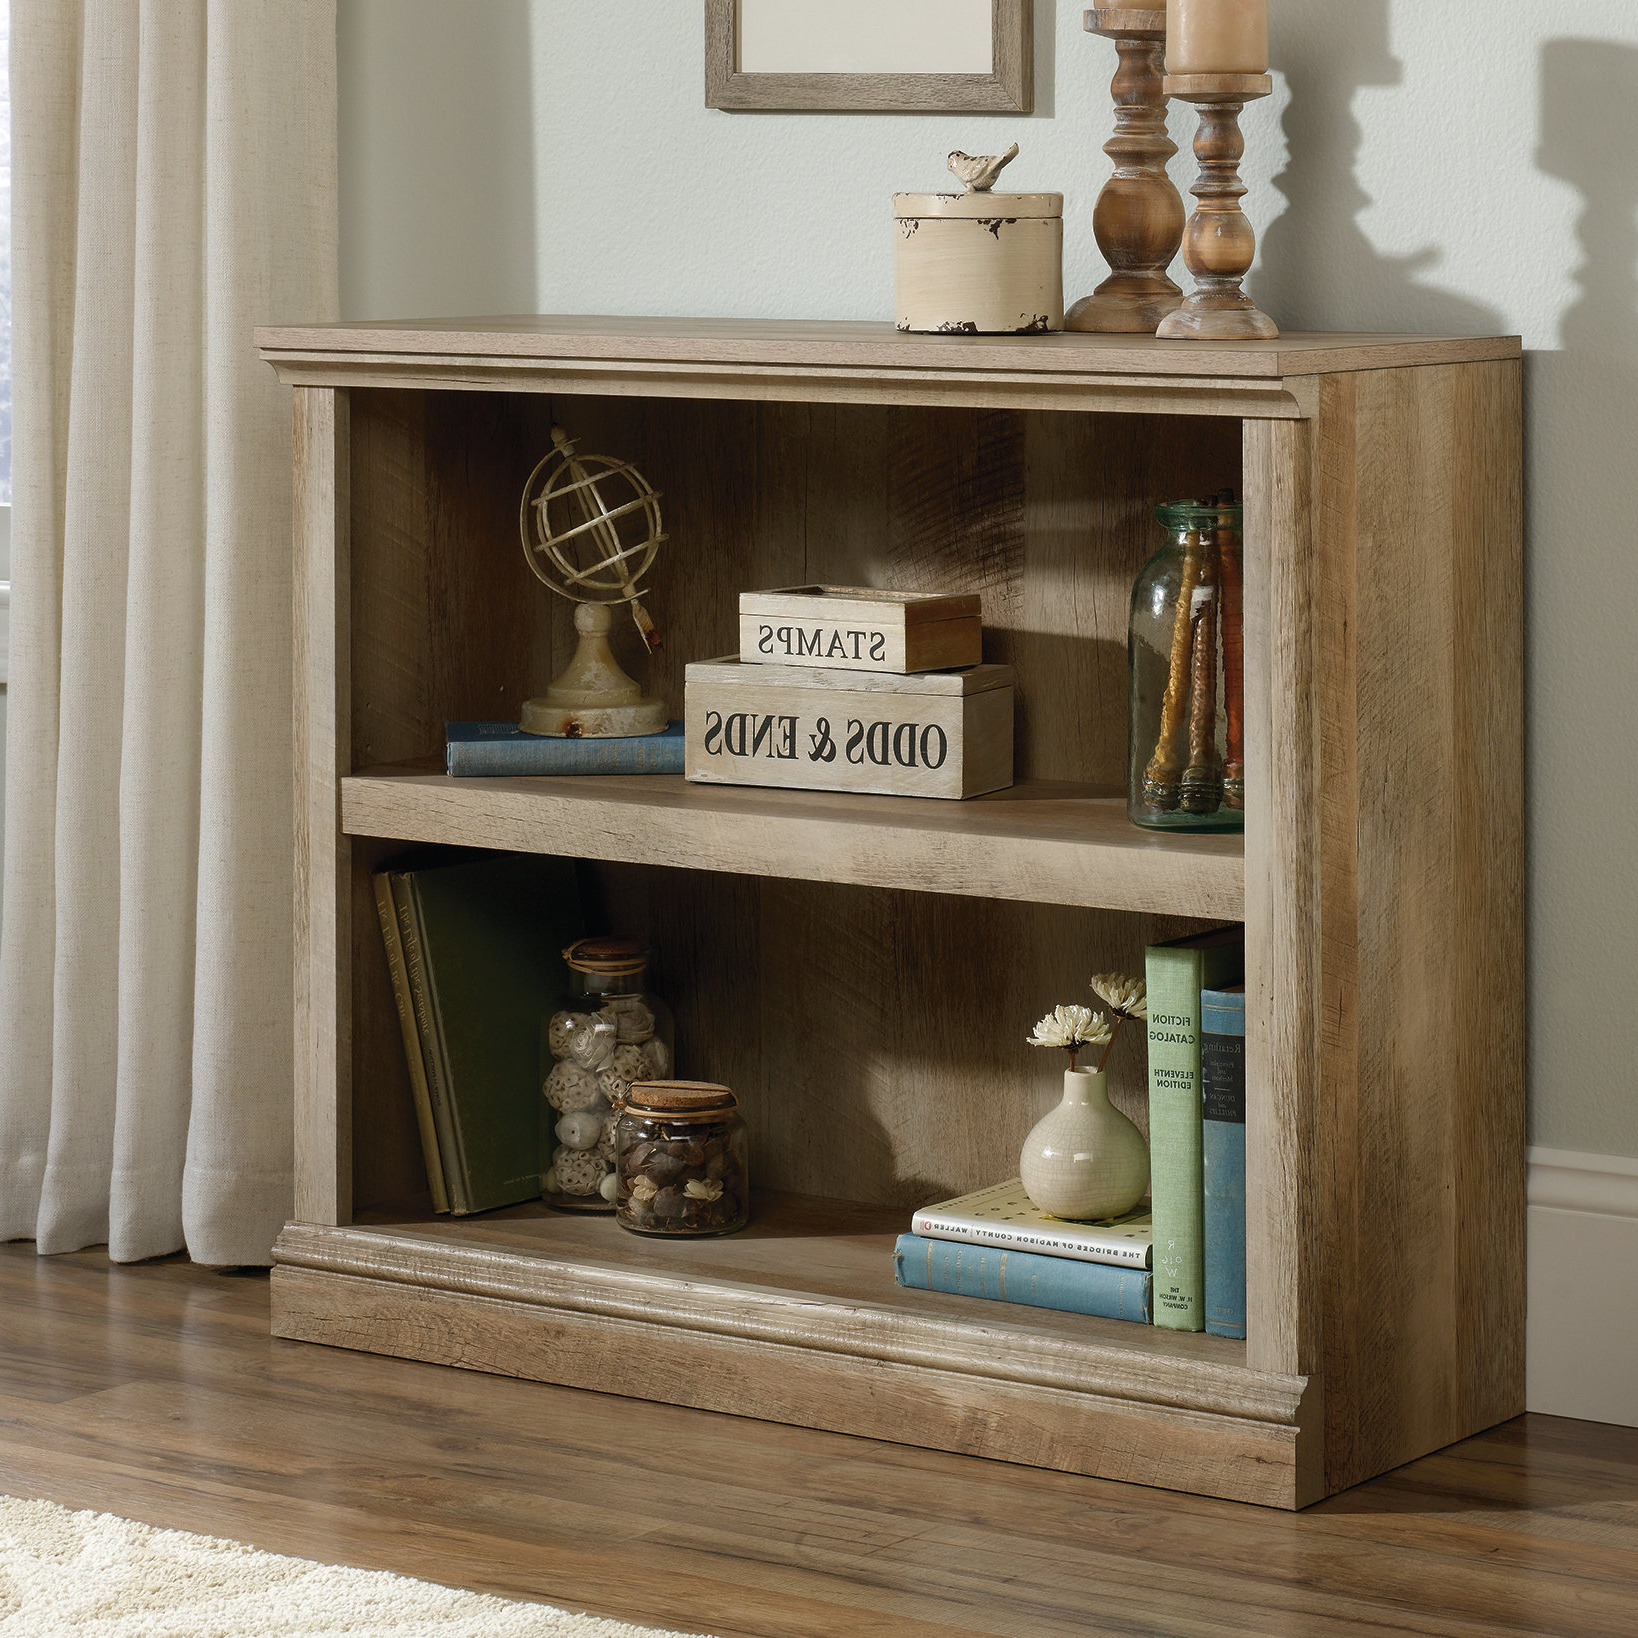 Widely Used Kirkbride Standard Bookcases Regarding Gianni Standard Bookcase (View 18 of 20)